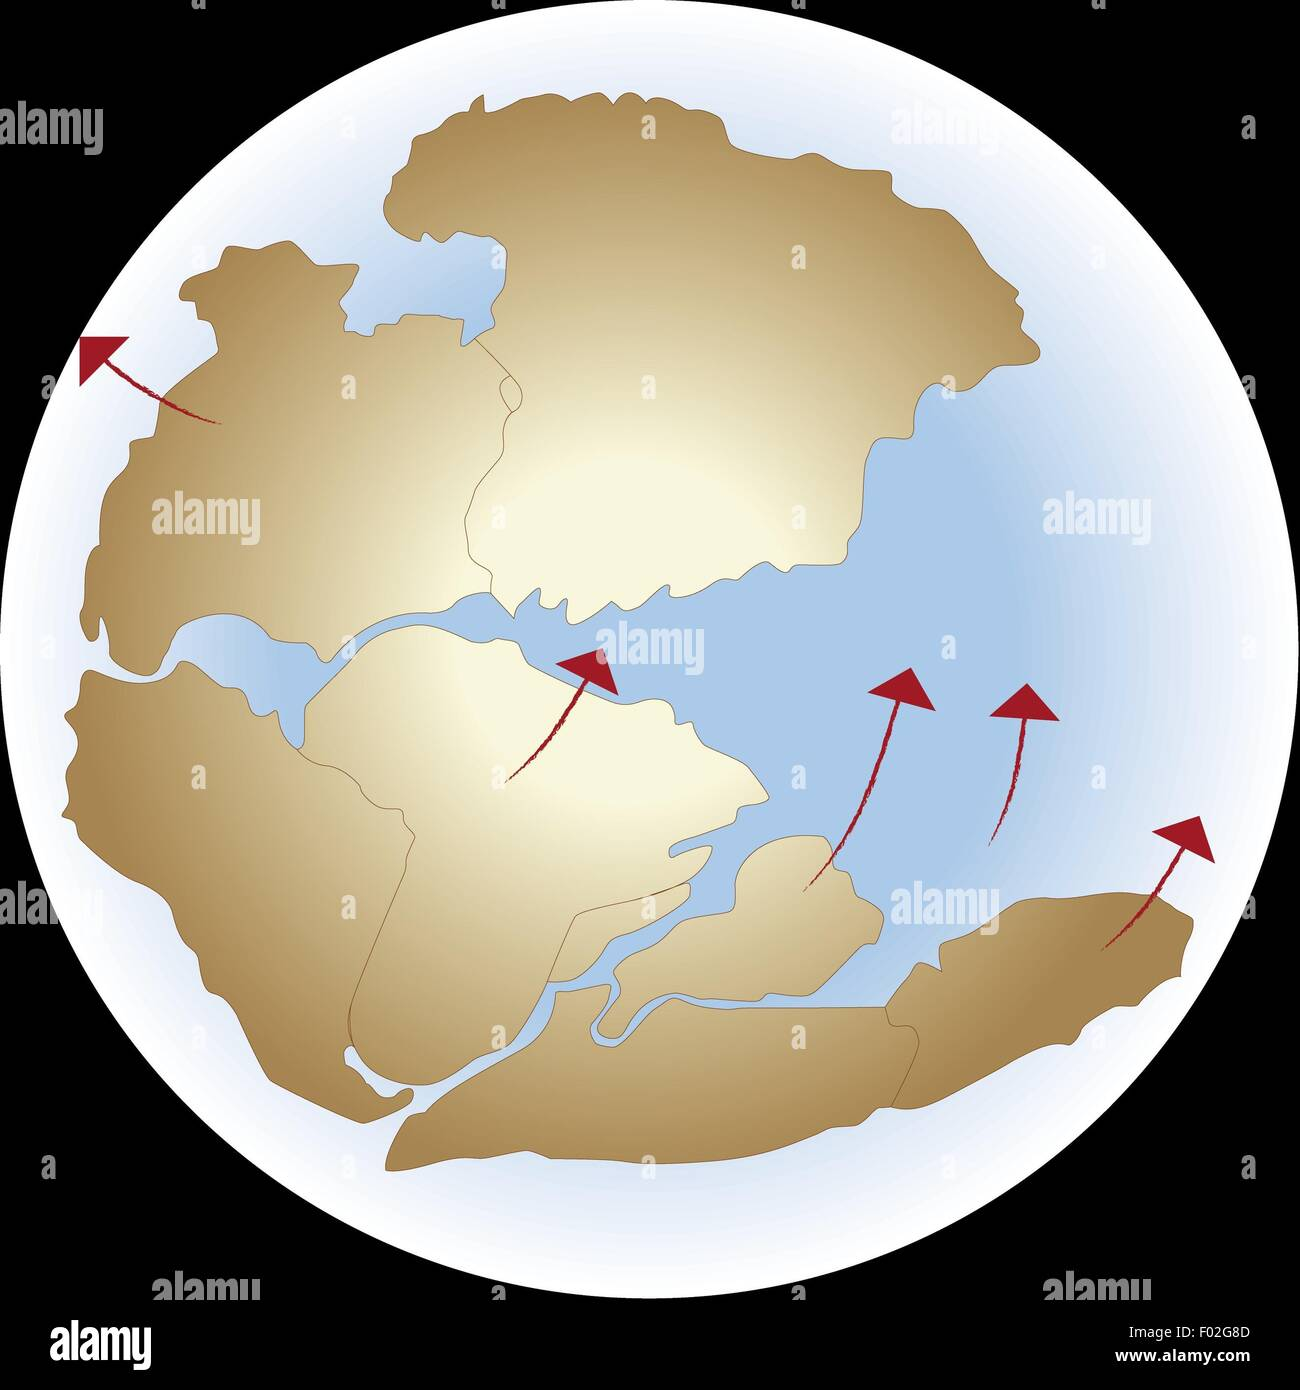 pangea supercontinent Pangaea or pangea is the name given to the supercontinent that existed during the paleozoic and mesozoic eras, before the process of plate tectonics separated each of the component continents into.